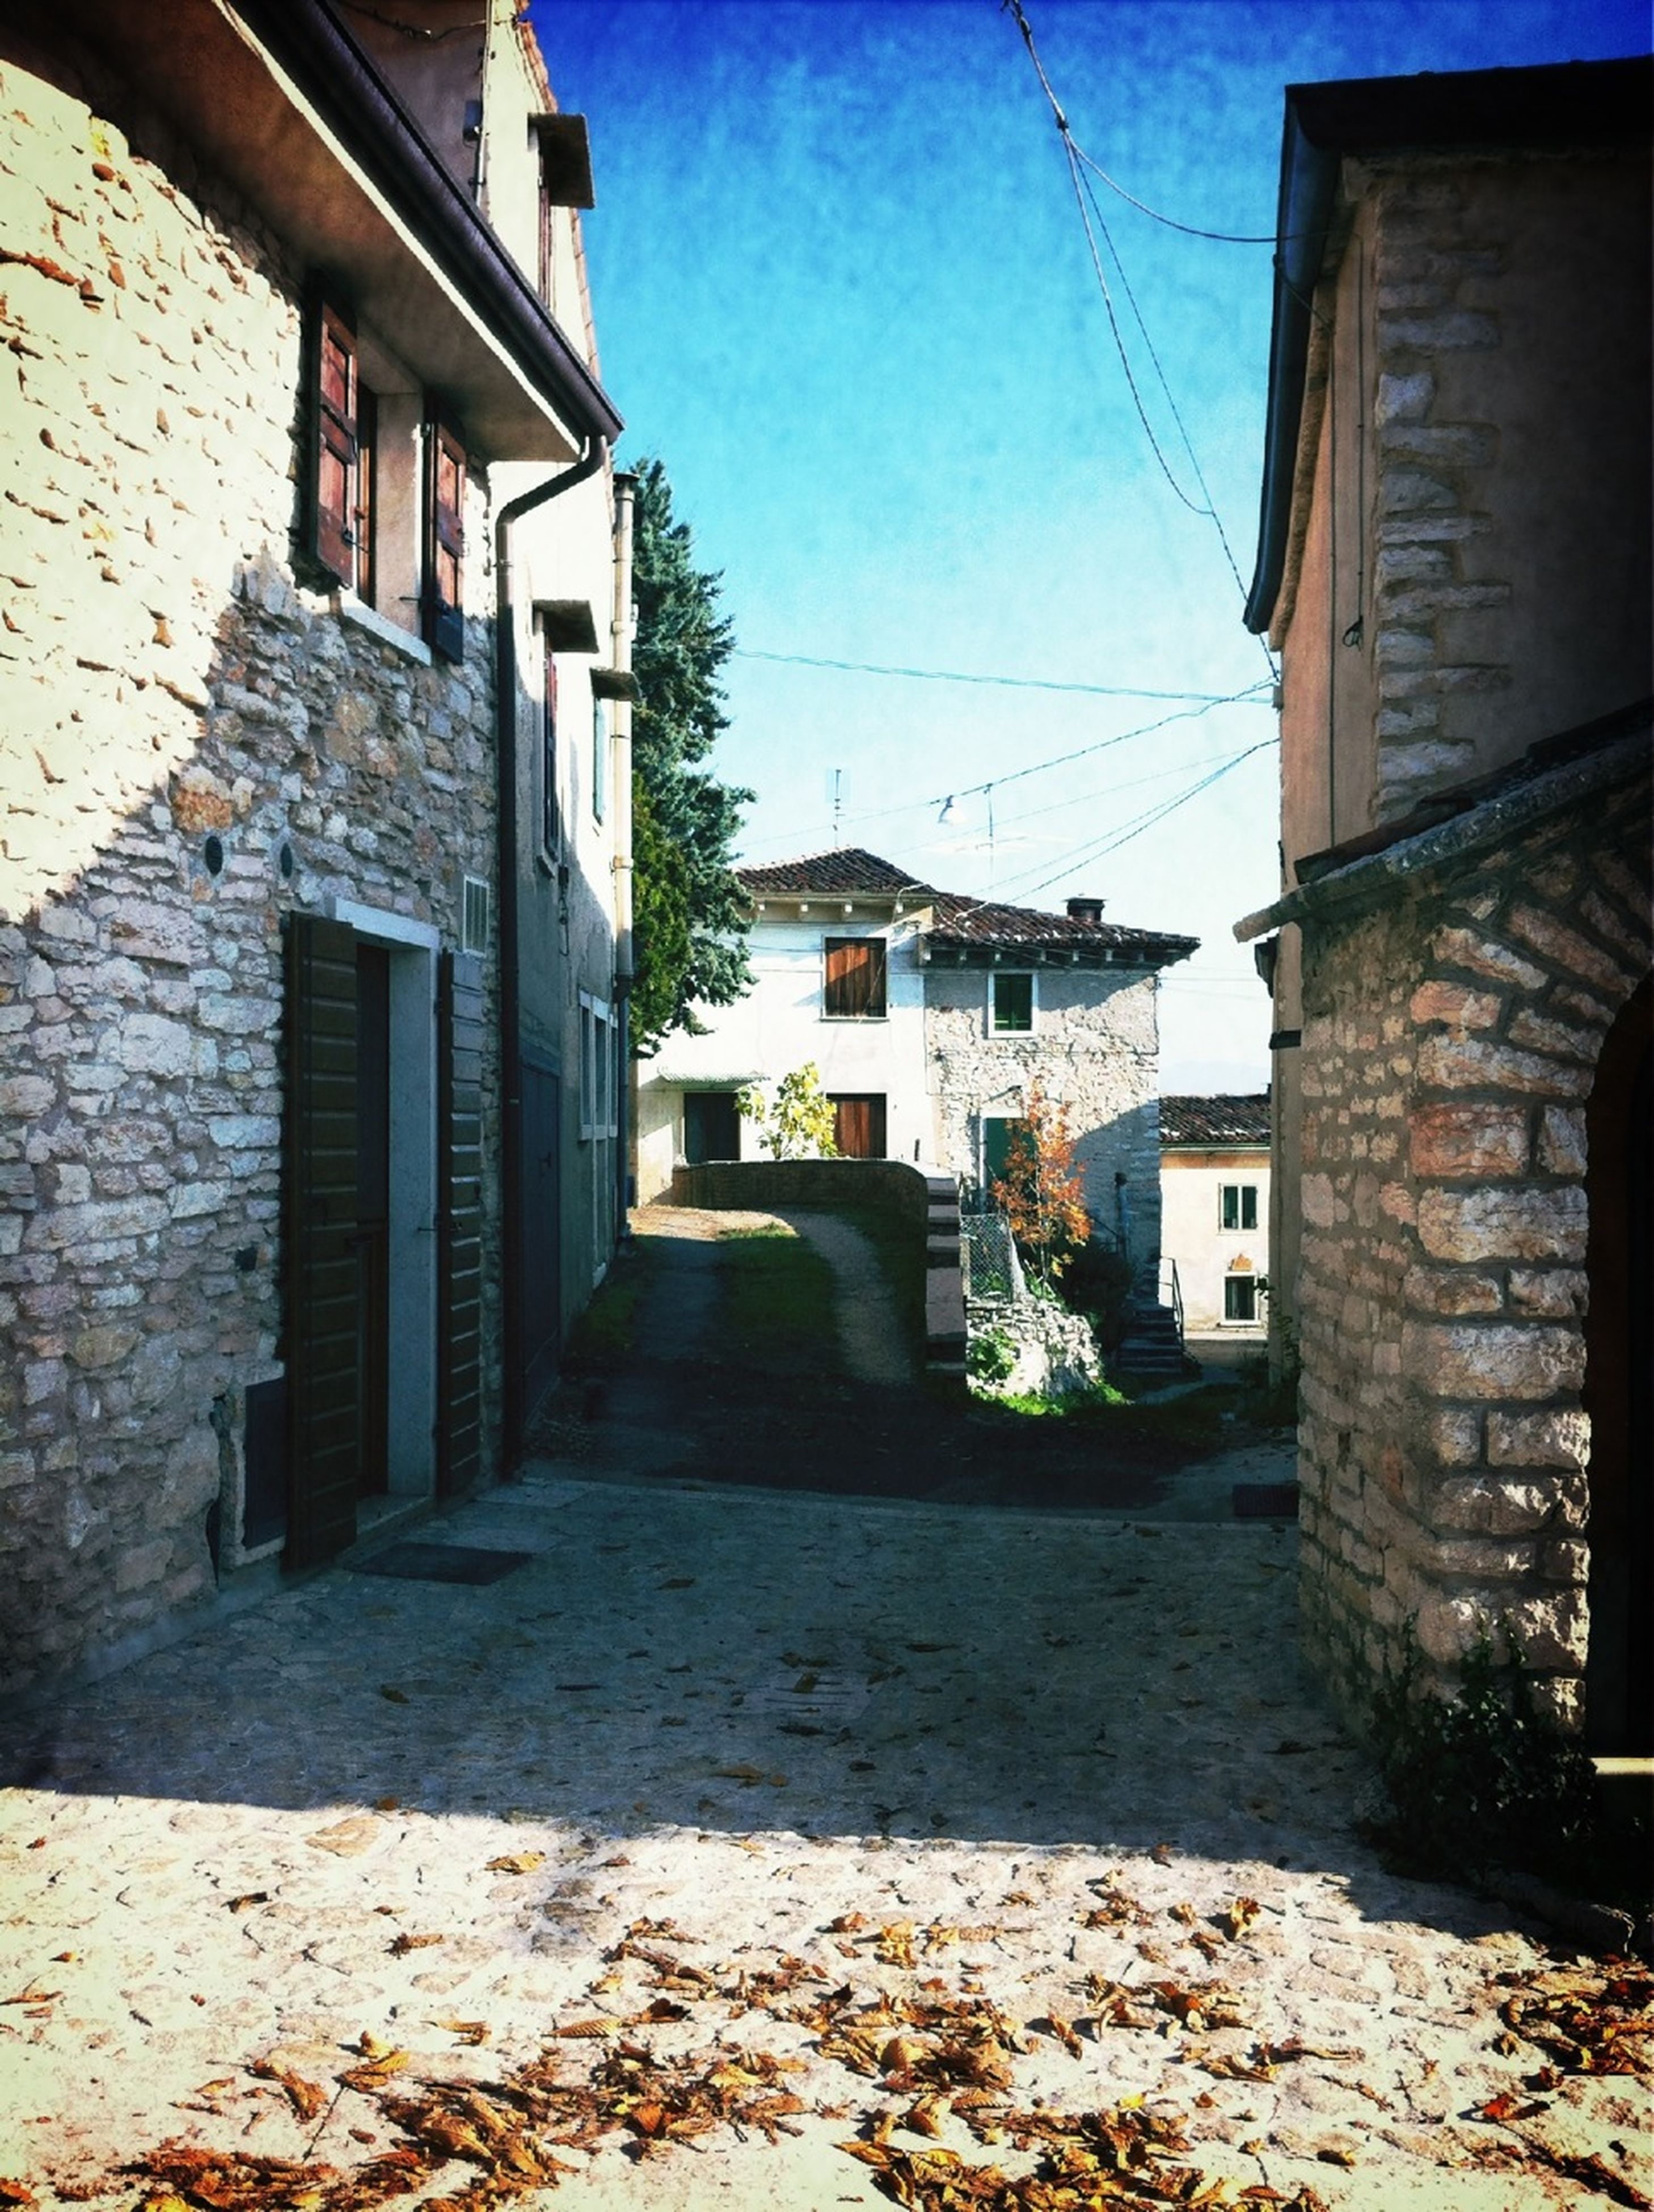 architecture, building exterior, built structure, residential building, residential structure, the way forward, street, building, house, sky, city, alley, town, narrow, residential district, sunlight, day, diminishing perspective, outdoors, old town